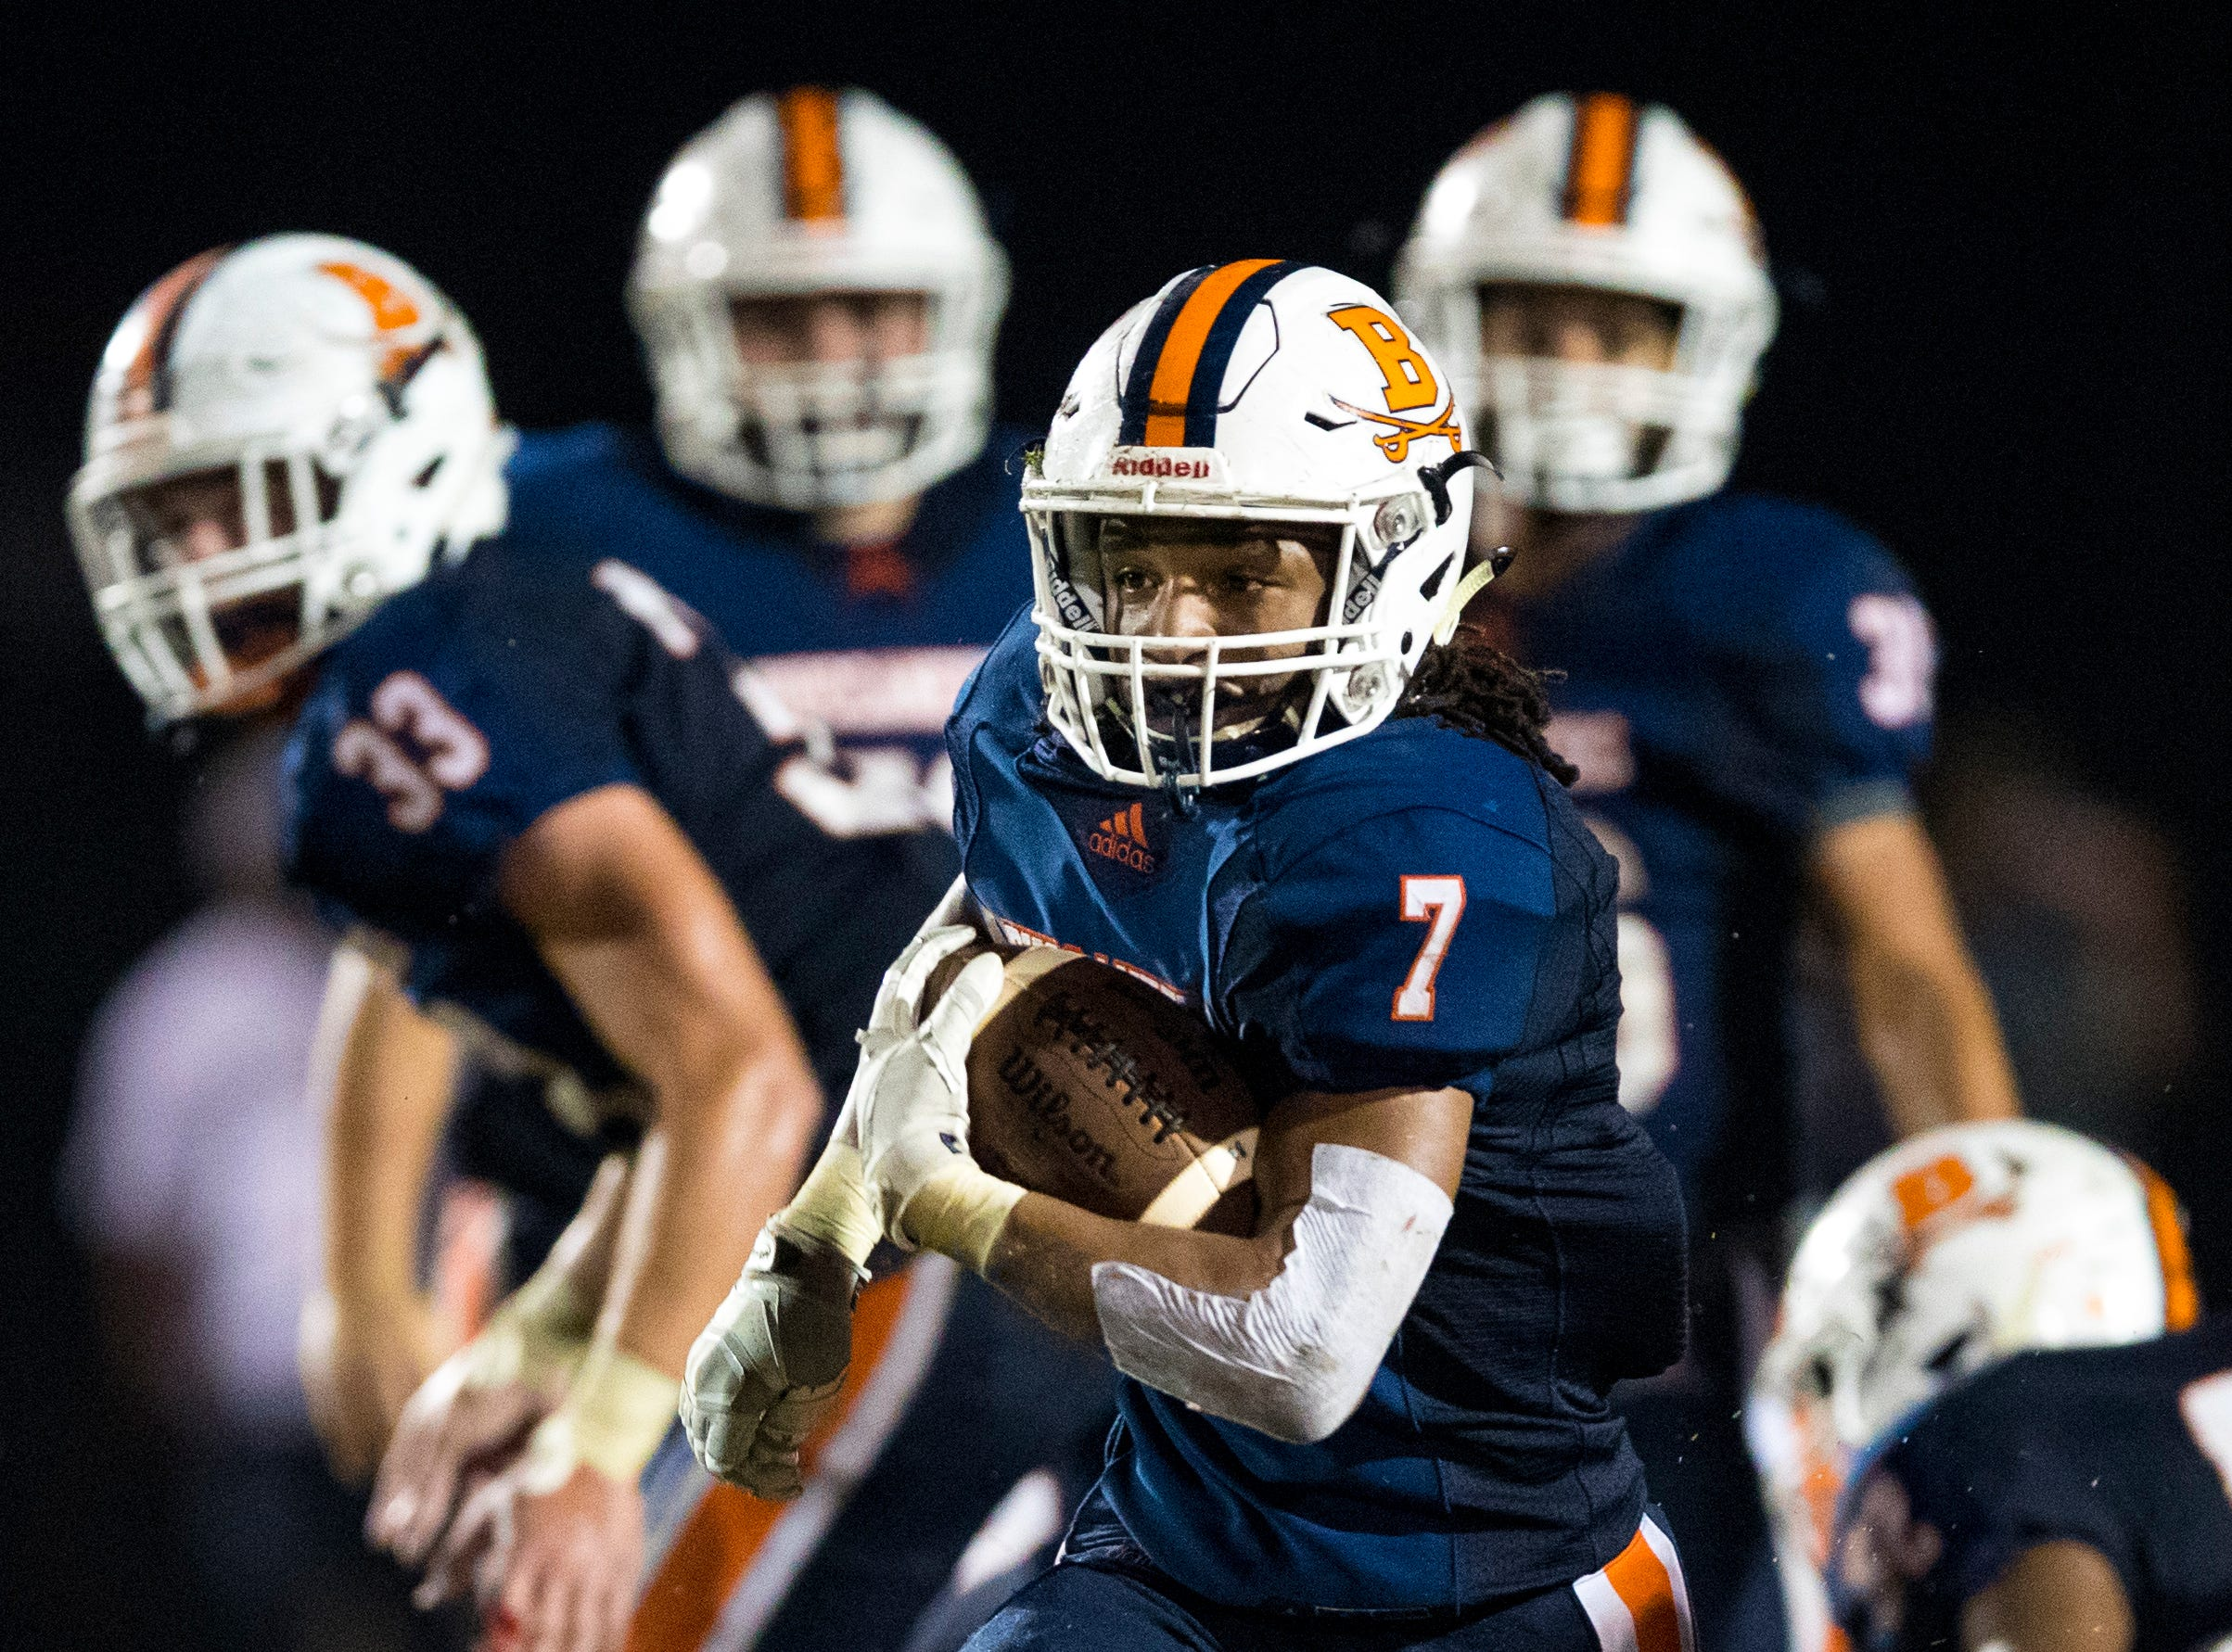 Beech's Ja'Sean Parks (7) runs the ball during Beech's game against Springfield at Beech High School in Hendersonville on Friday, Sept. 21, 2018.